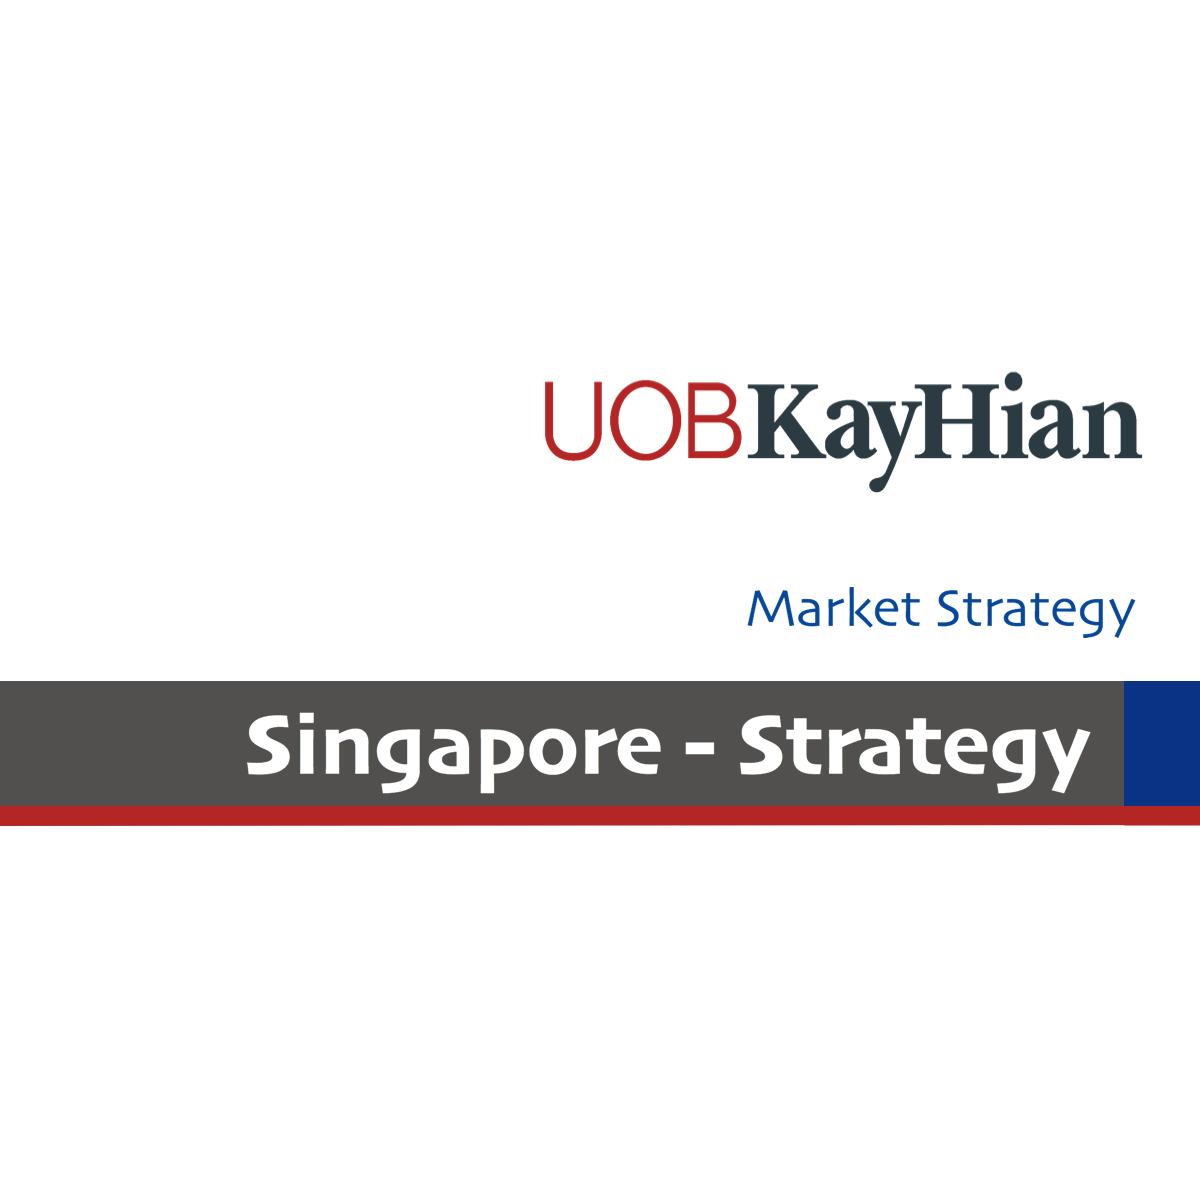 Strategy Singapore - UOB Kay Hian Research 2018-08-17: 2q18 Results Wrap-up – More Beats But Outlook Moderated